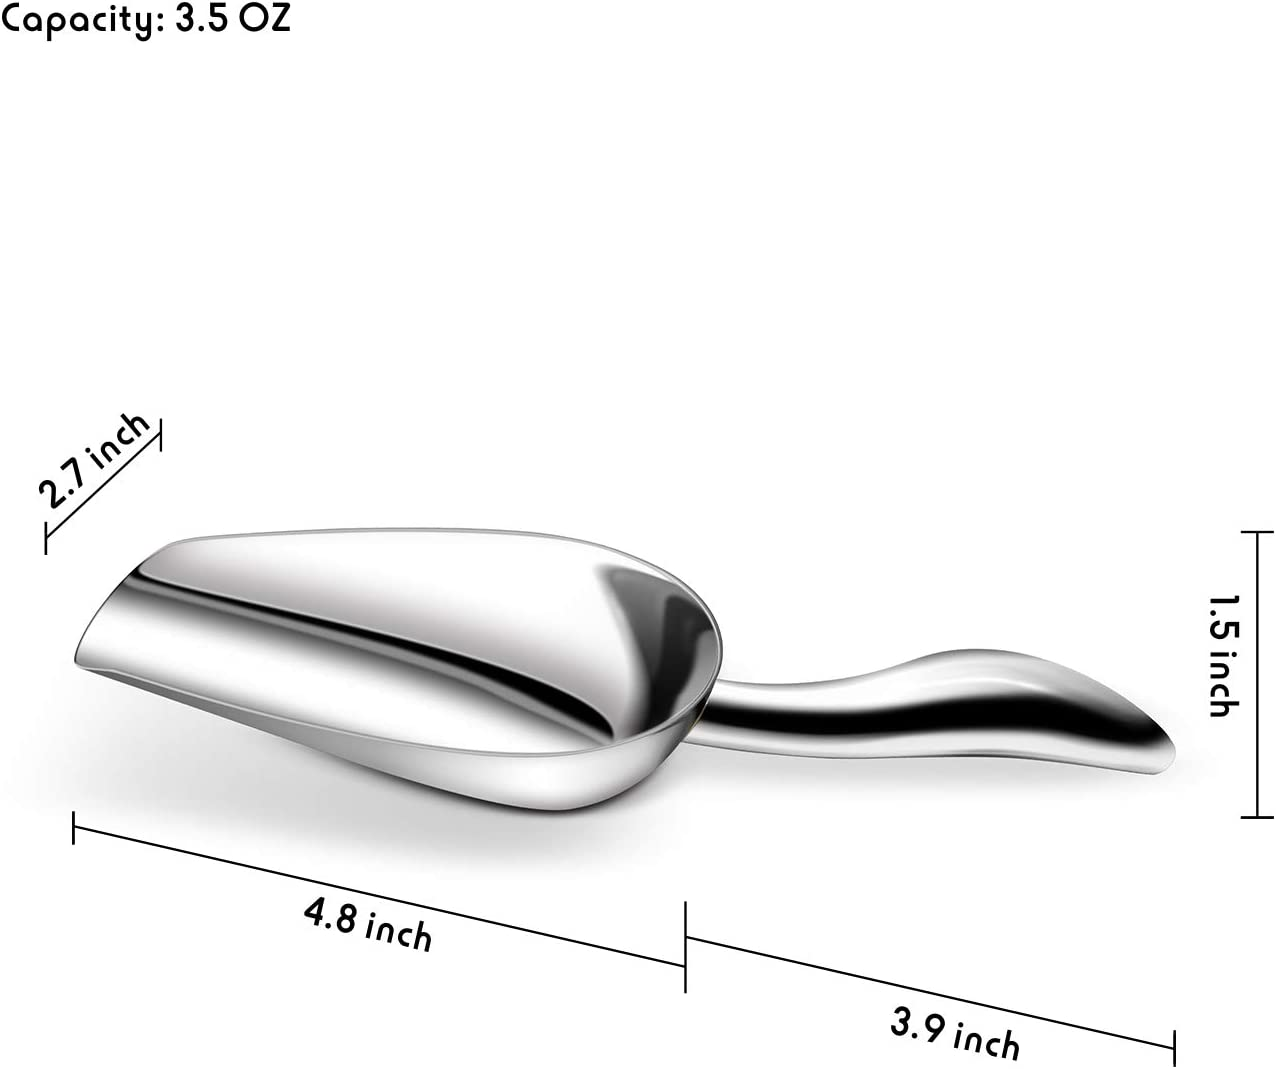 Soft Contours Heavy Duty 3.5 OZ Popcorn Candy Coffee Beans Scoop Mirror Finish Fortune Candy Ice Scoop Stainless Steel Ice Scooper Comfy Grip